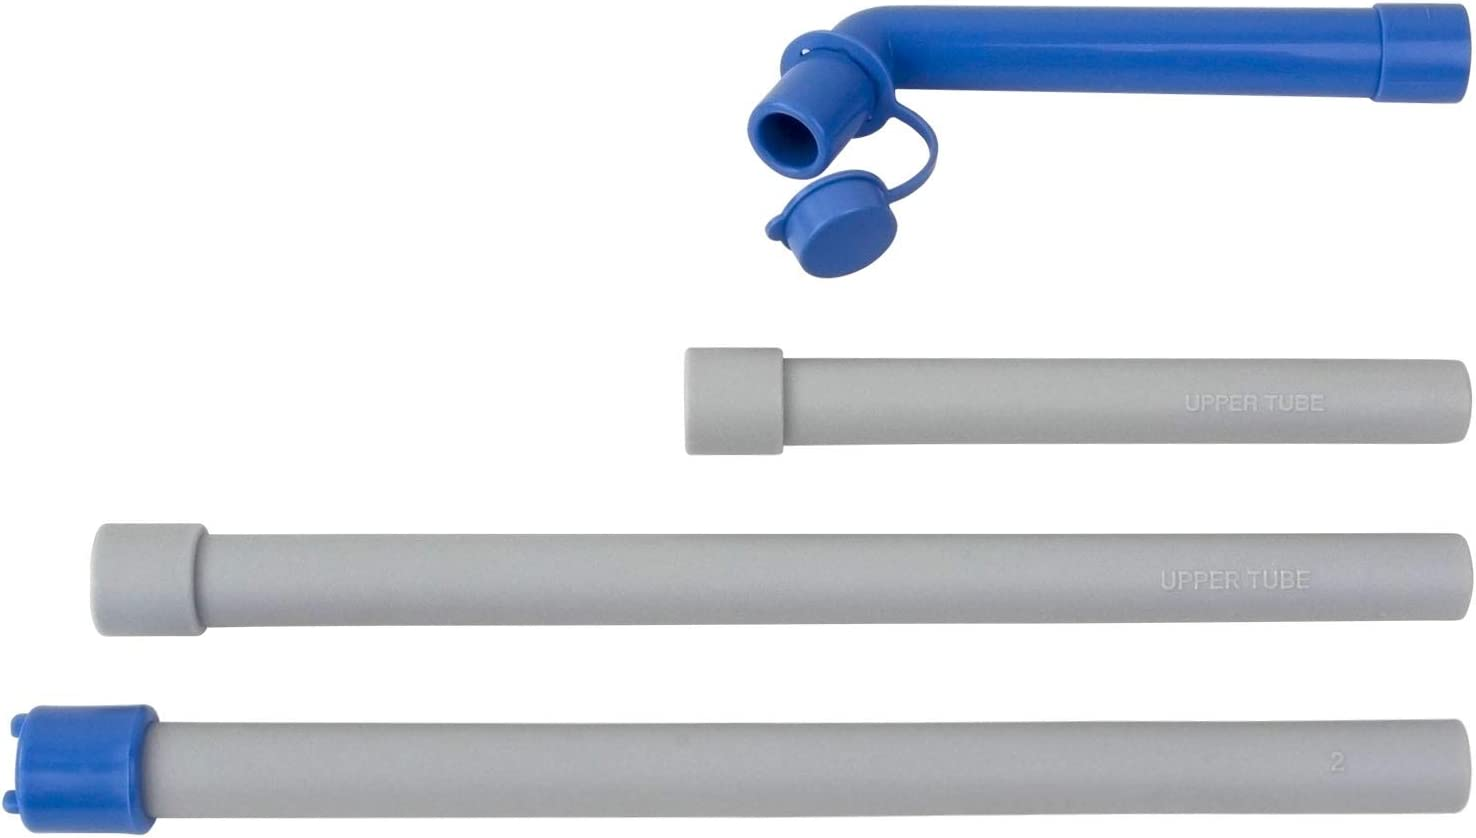 Replaecment - Accessories Bundle (Long Upper Tube/Short Upper Tube/Lower Tube/Spout with Cap) for the Original Manual Drinking Water Pump